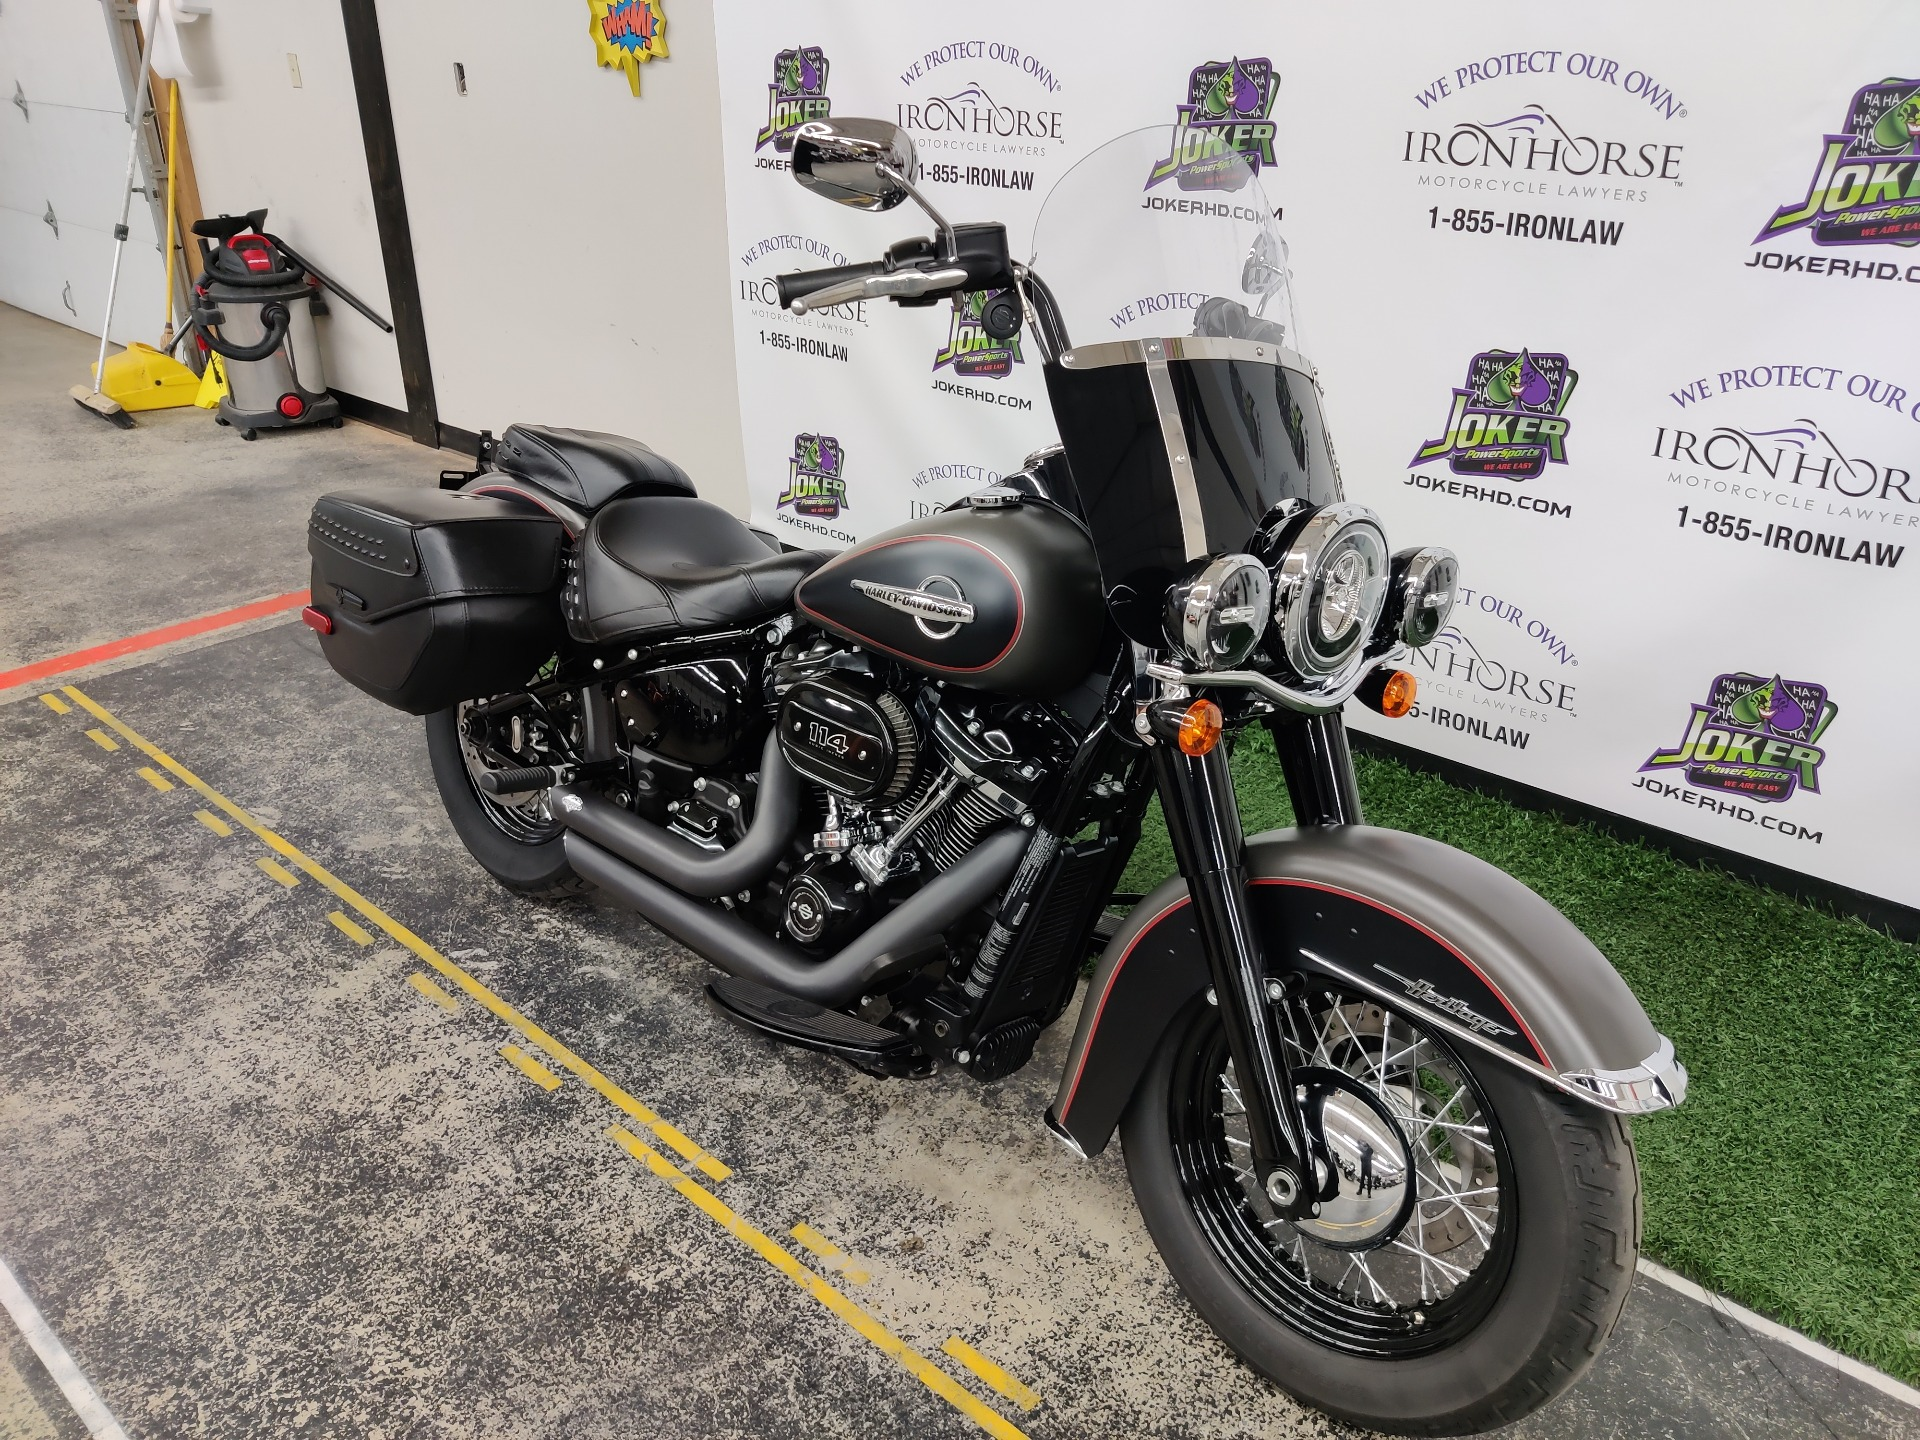 2018 Harley-Davidson Heritage Classic 114 in Blacksburg, South Carolina - Photo 2